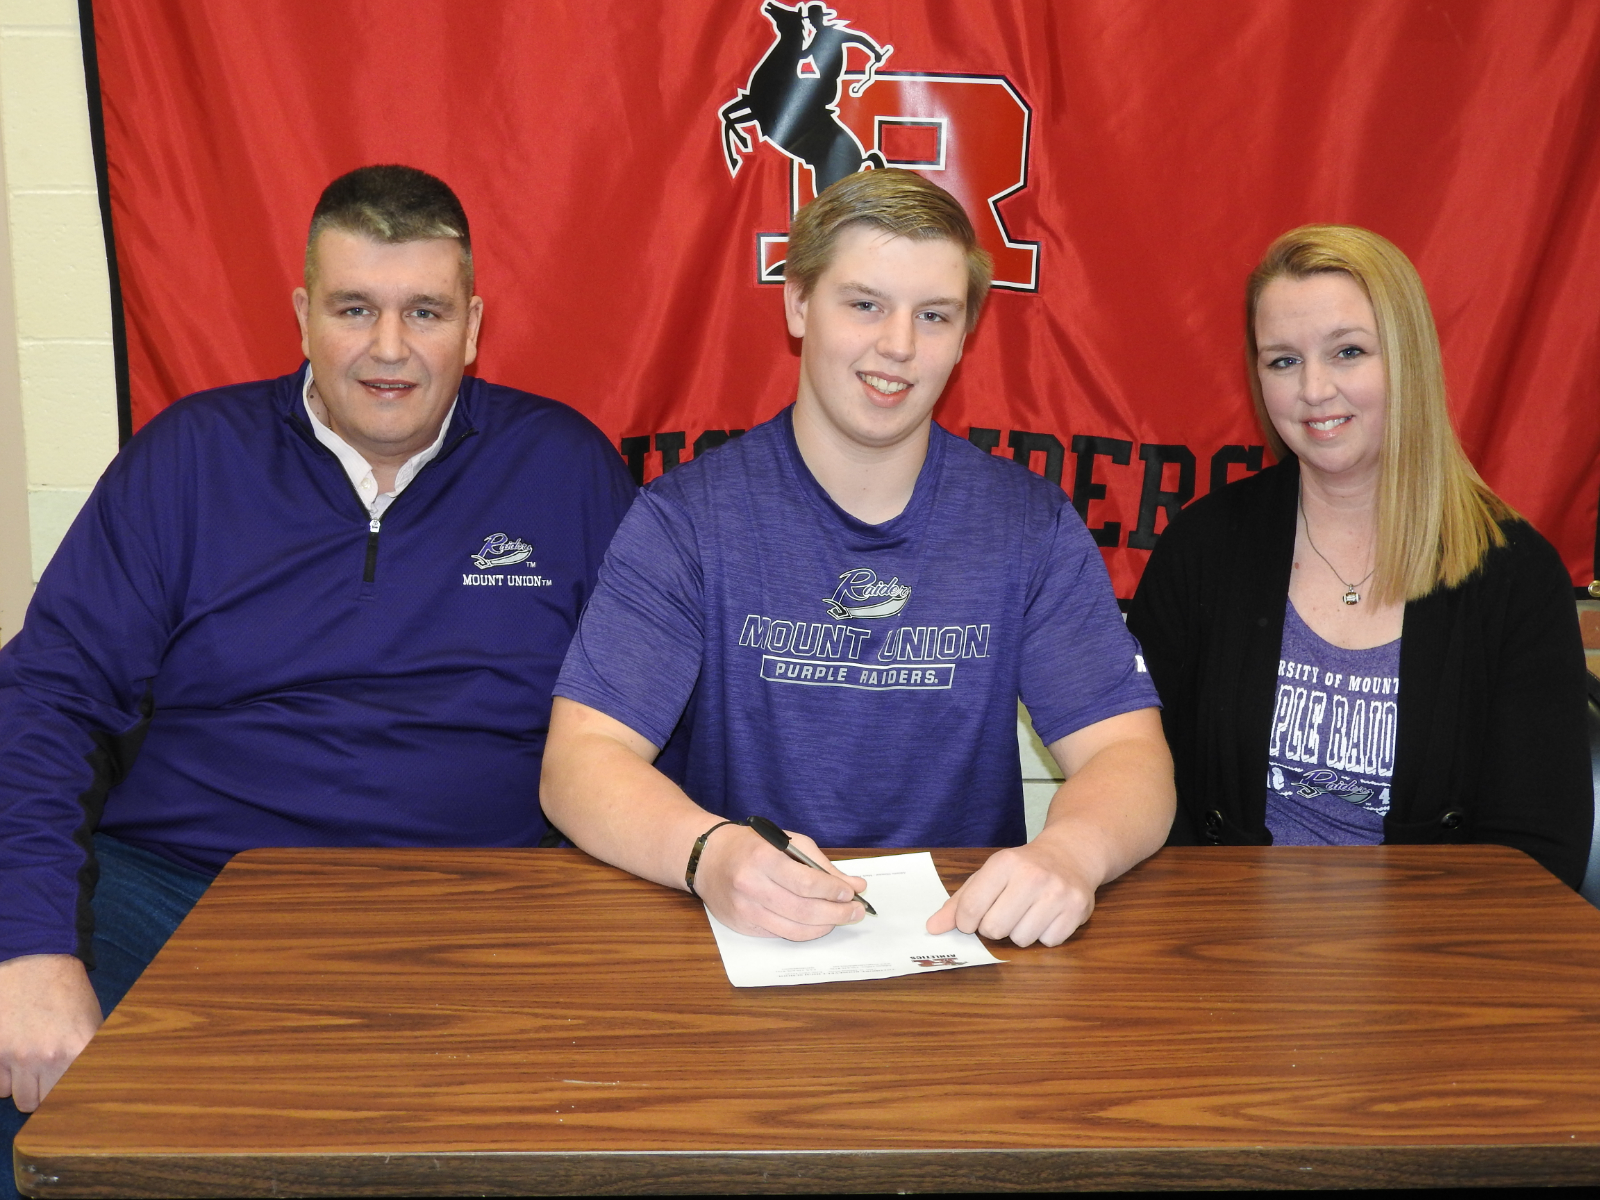 Senior Rough Rider Bill Wolford Signs With Mount Union